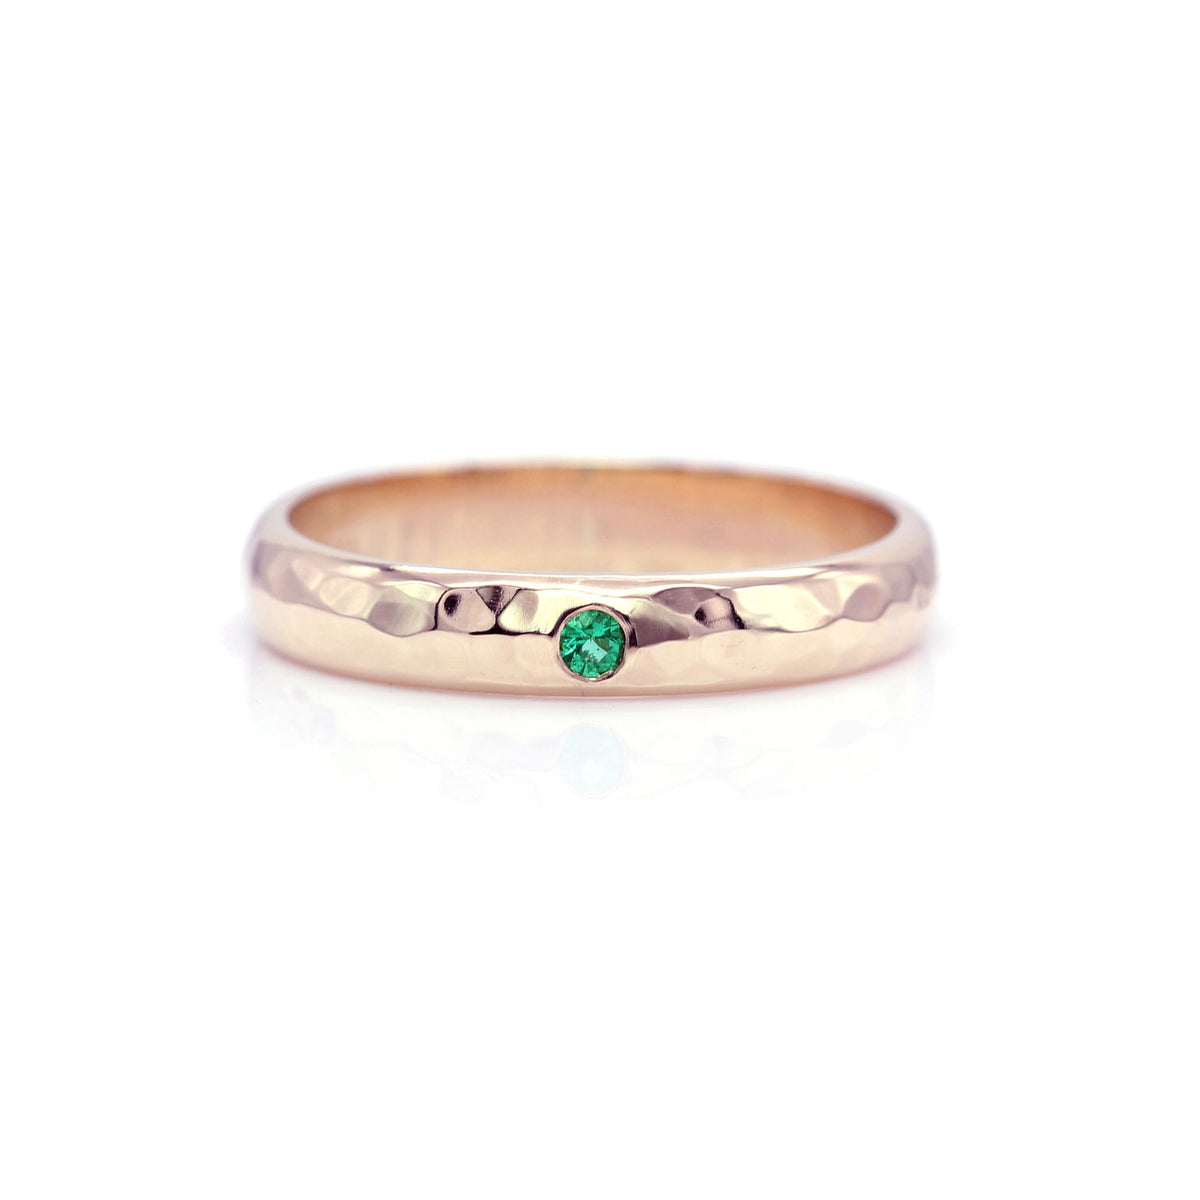 Emerald Hammered Ring Band - Rose Gold